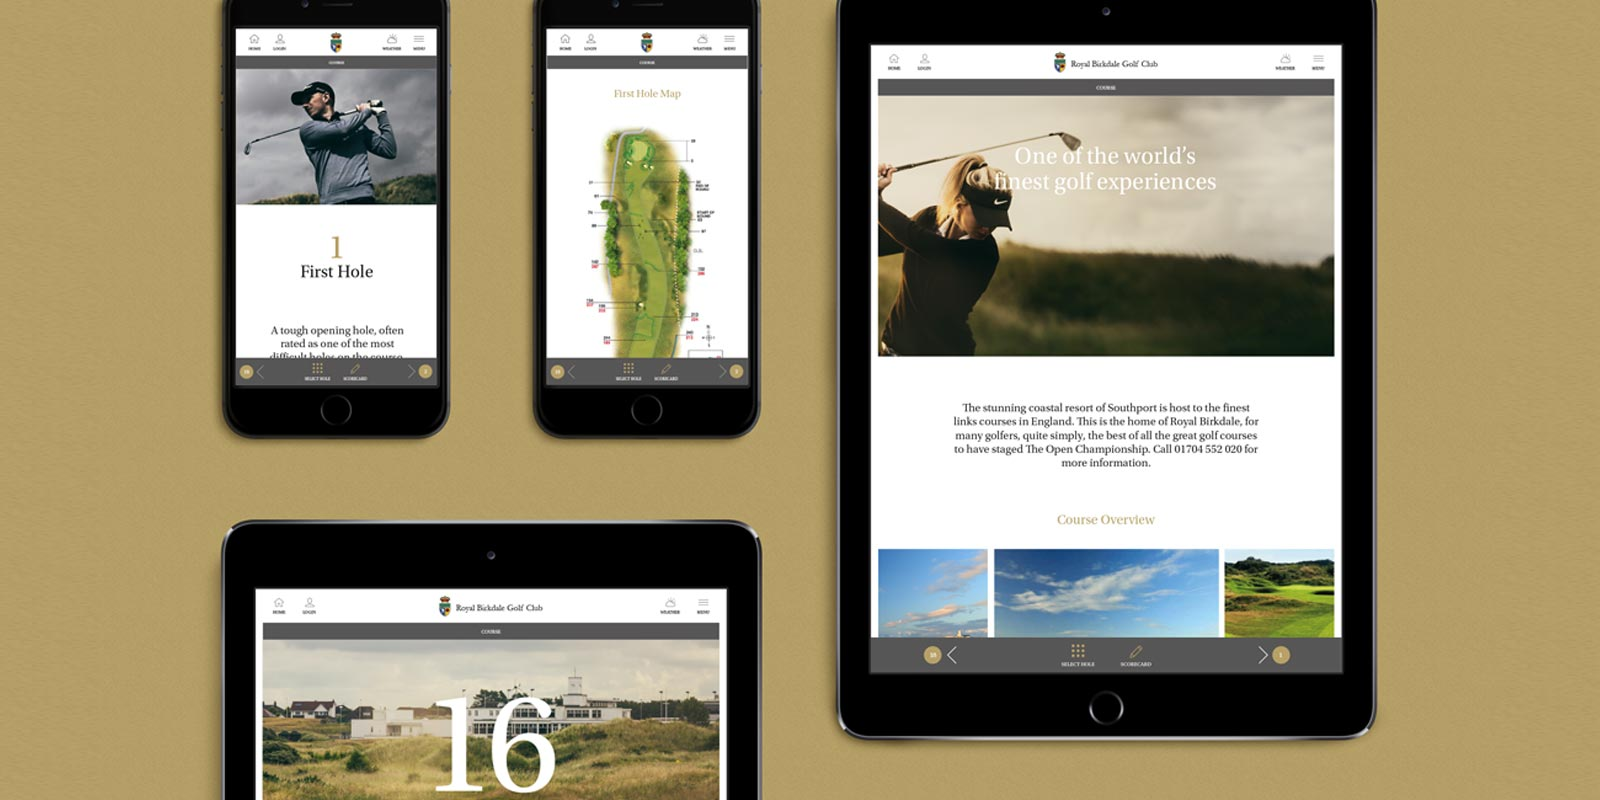 Royal Birkdale Golf Club - Sport Website Case Study